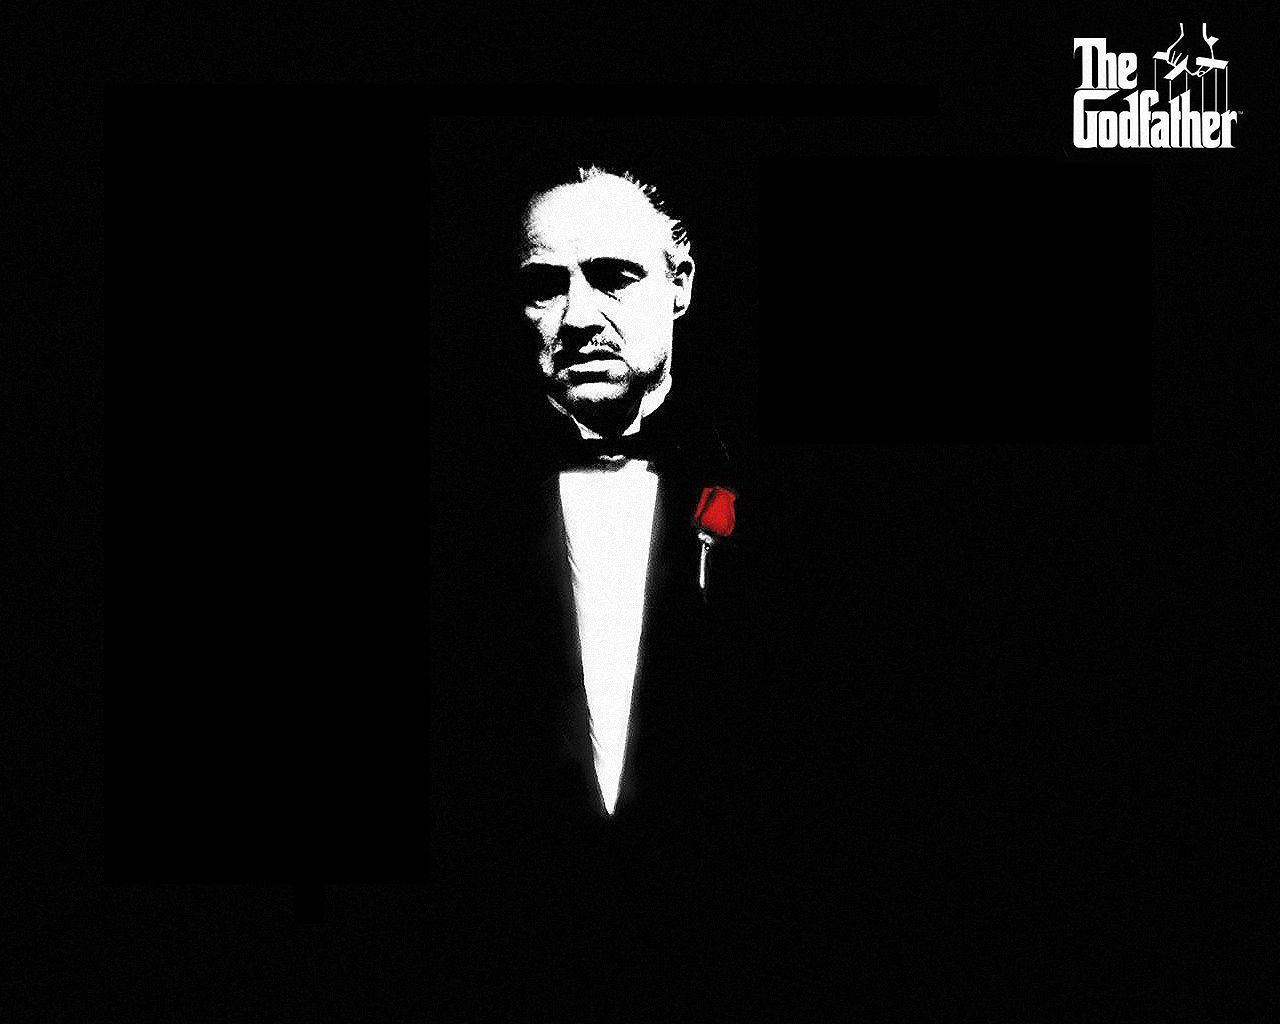 Mario Puzo images godfather HD wallpaper and background ...